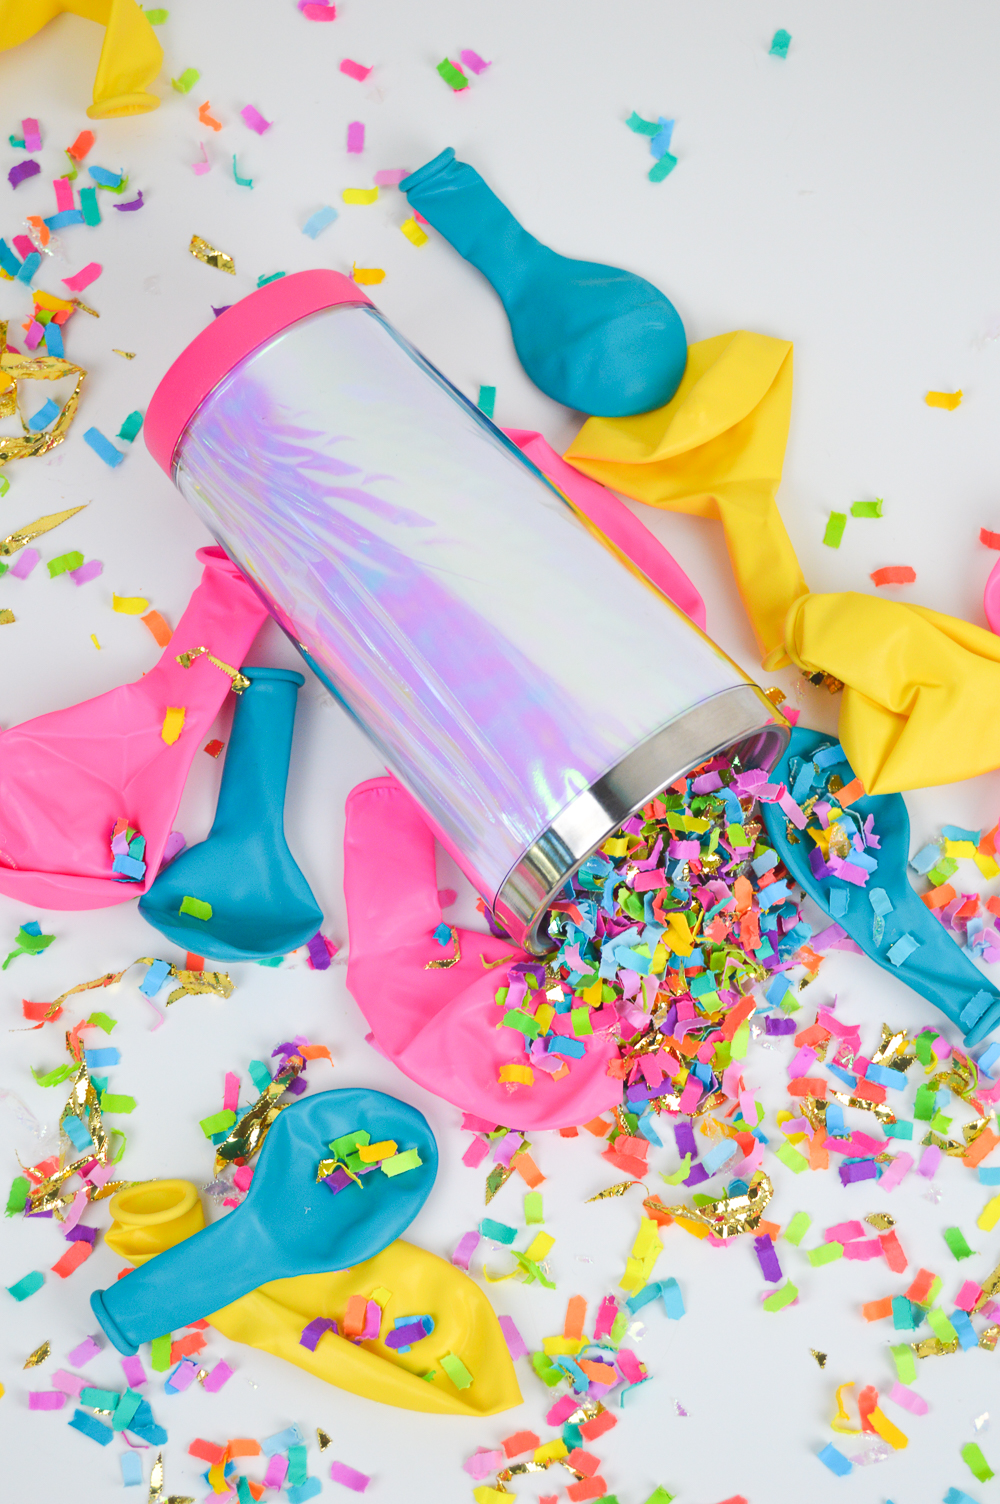 DIY Holographic Travel Mug